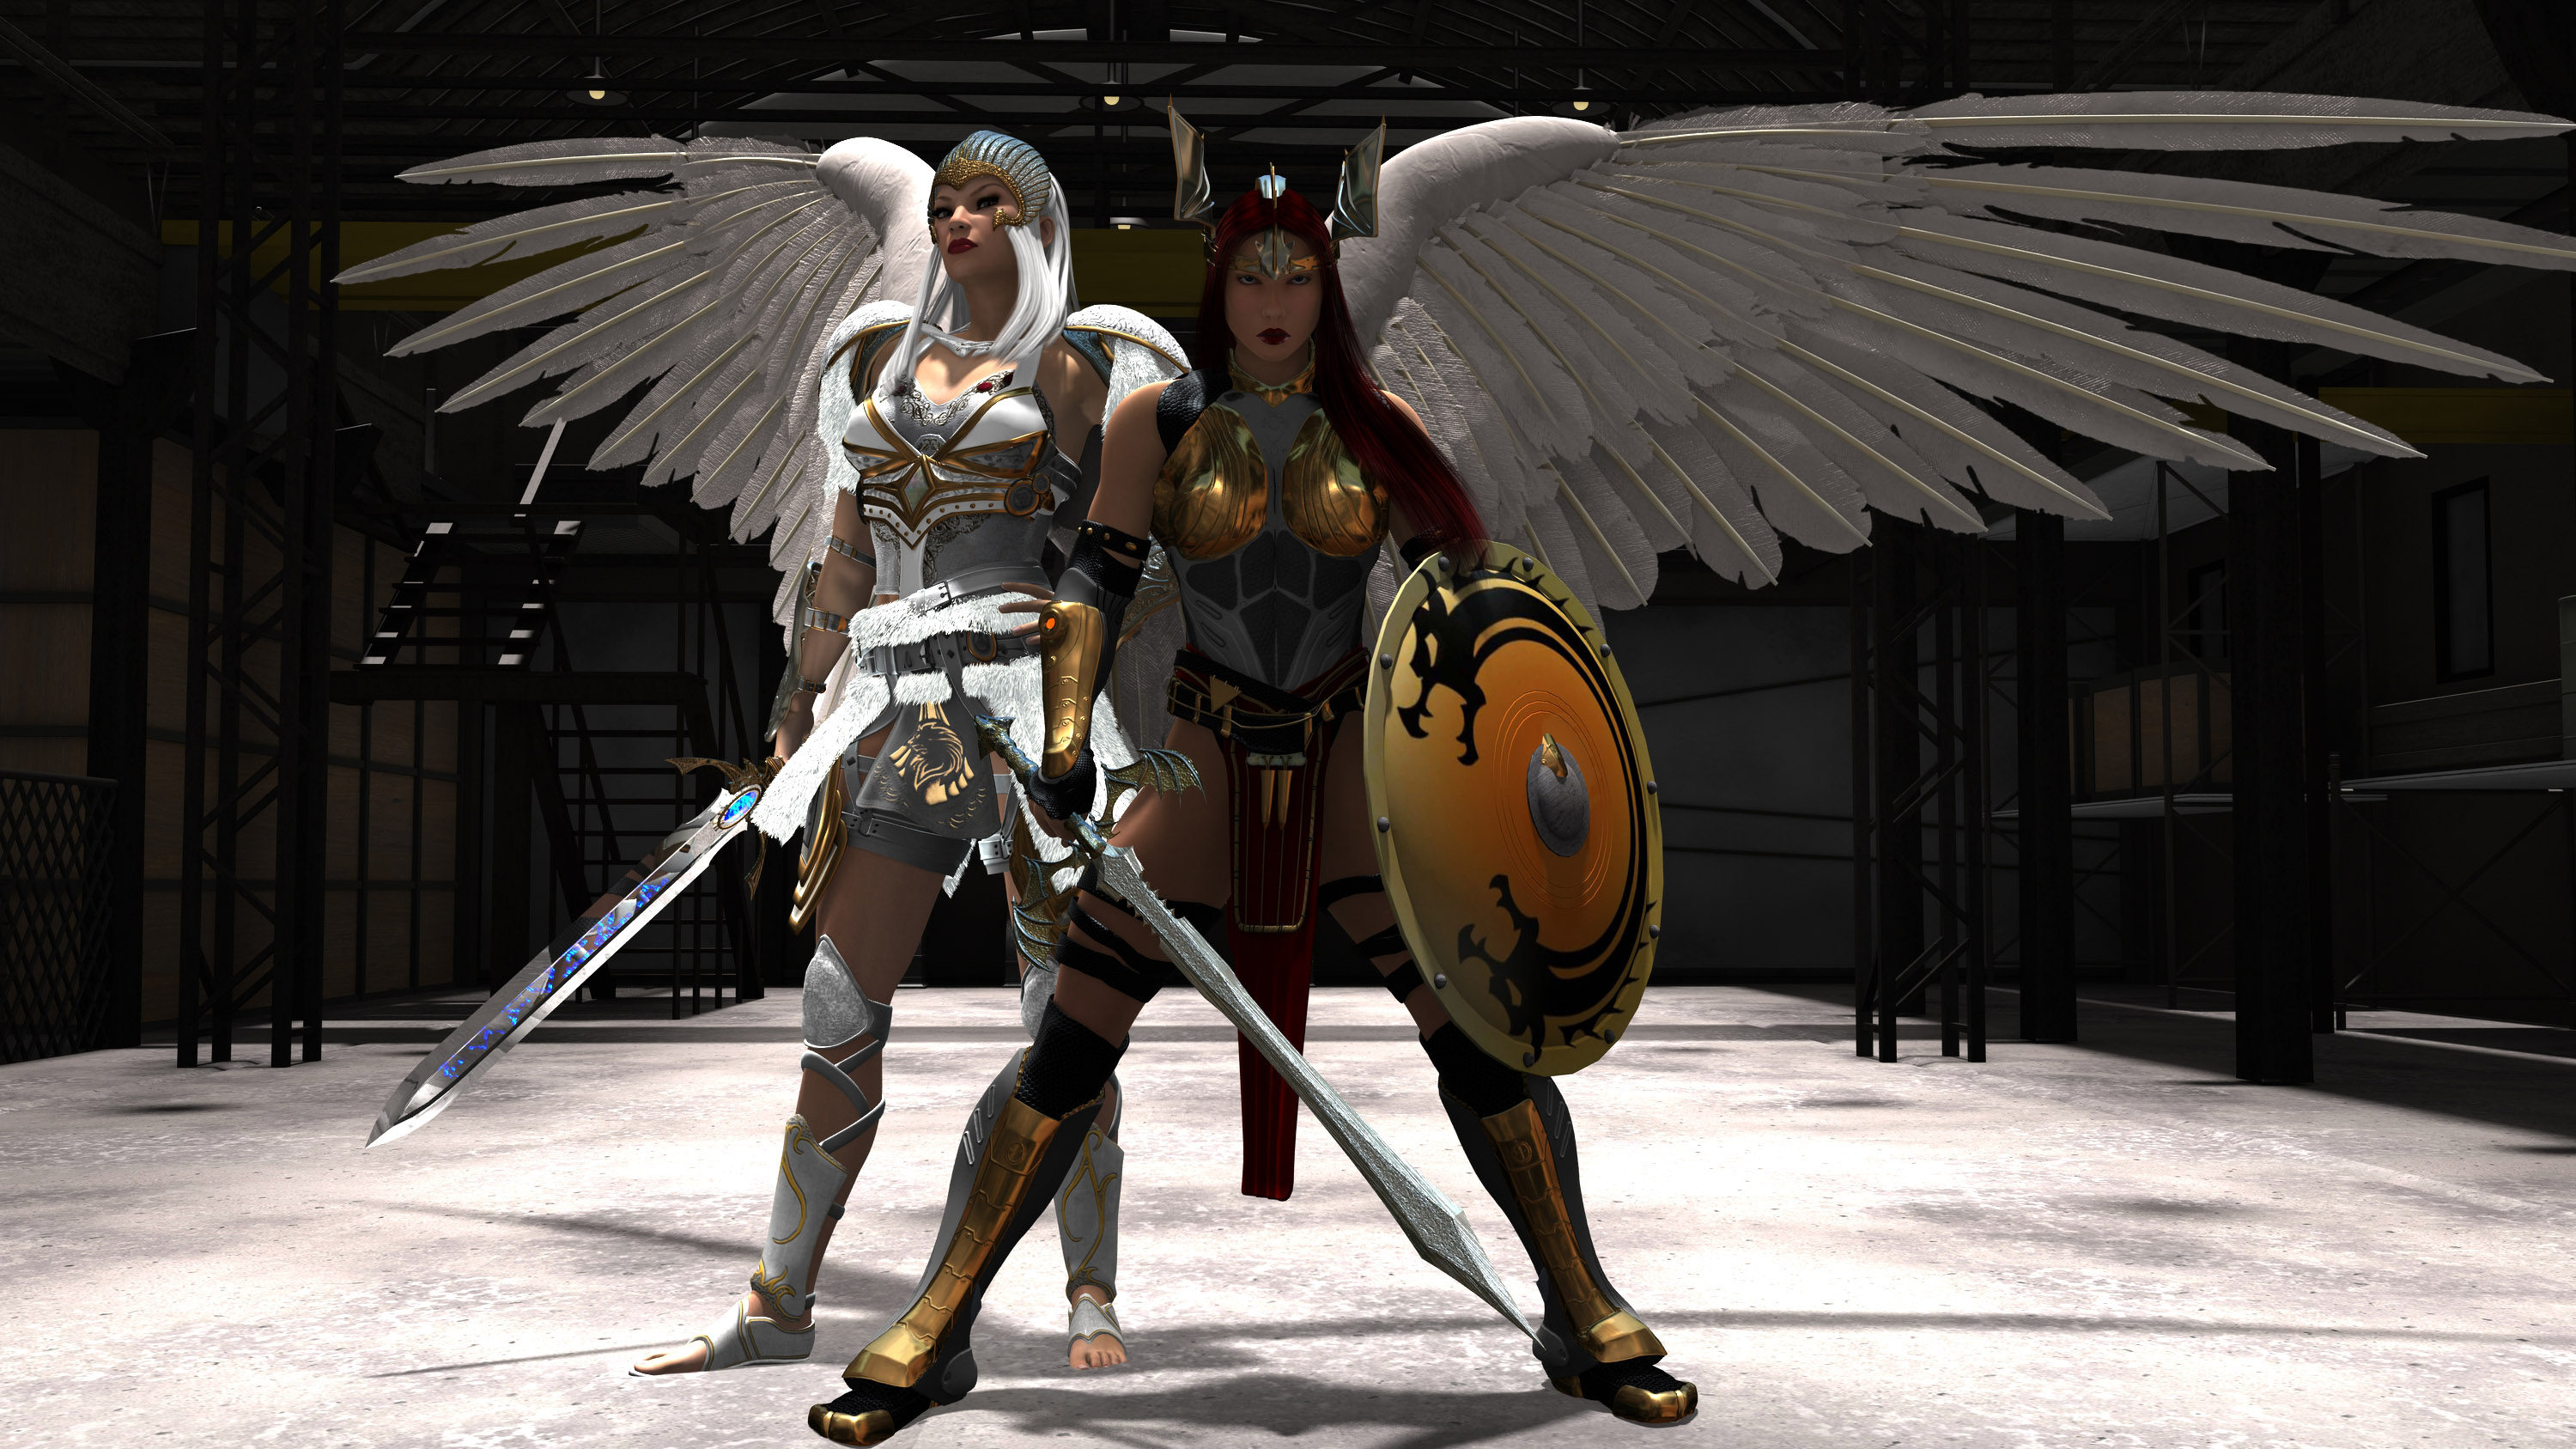 white Valkyrie and Ragnild the Viking Queen.